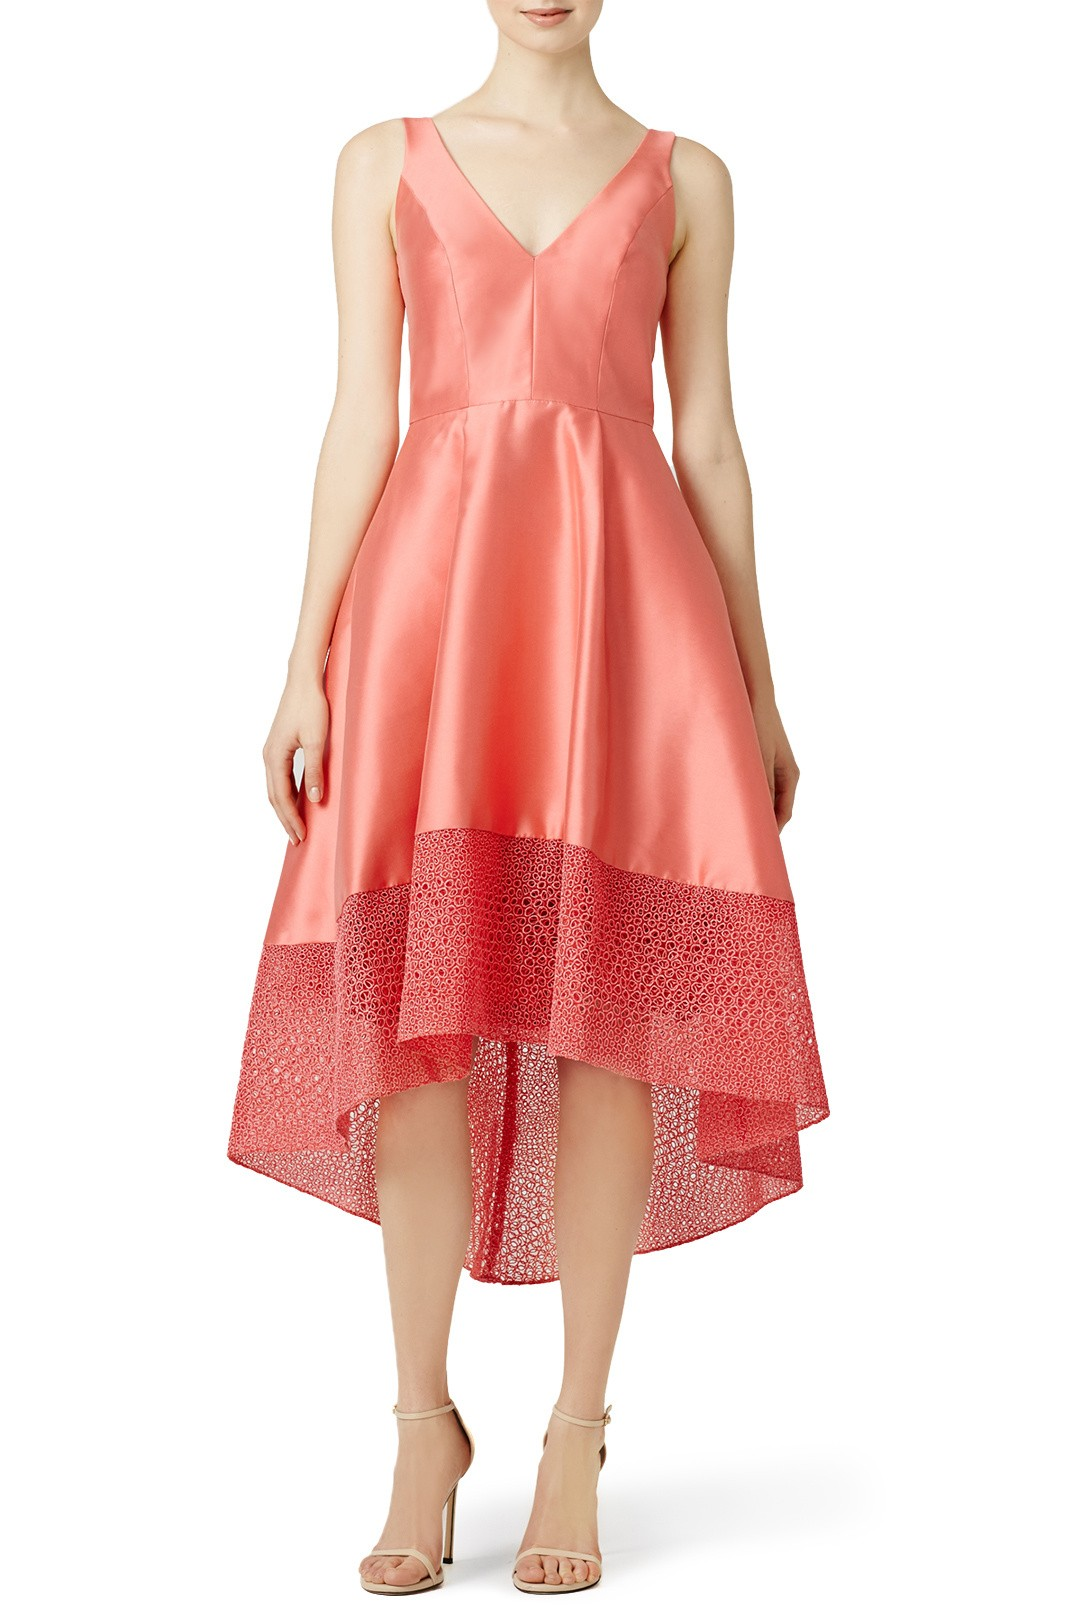 Coral Dresses | Coral Dresses for Weddings